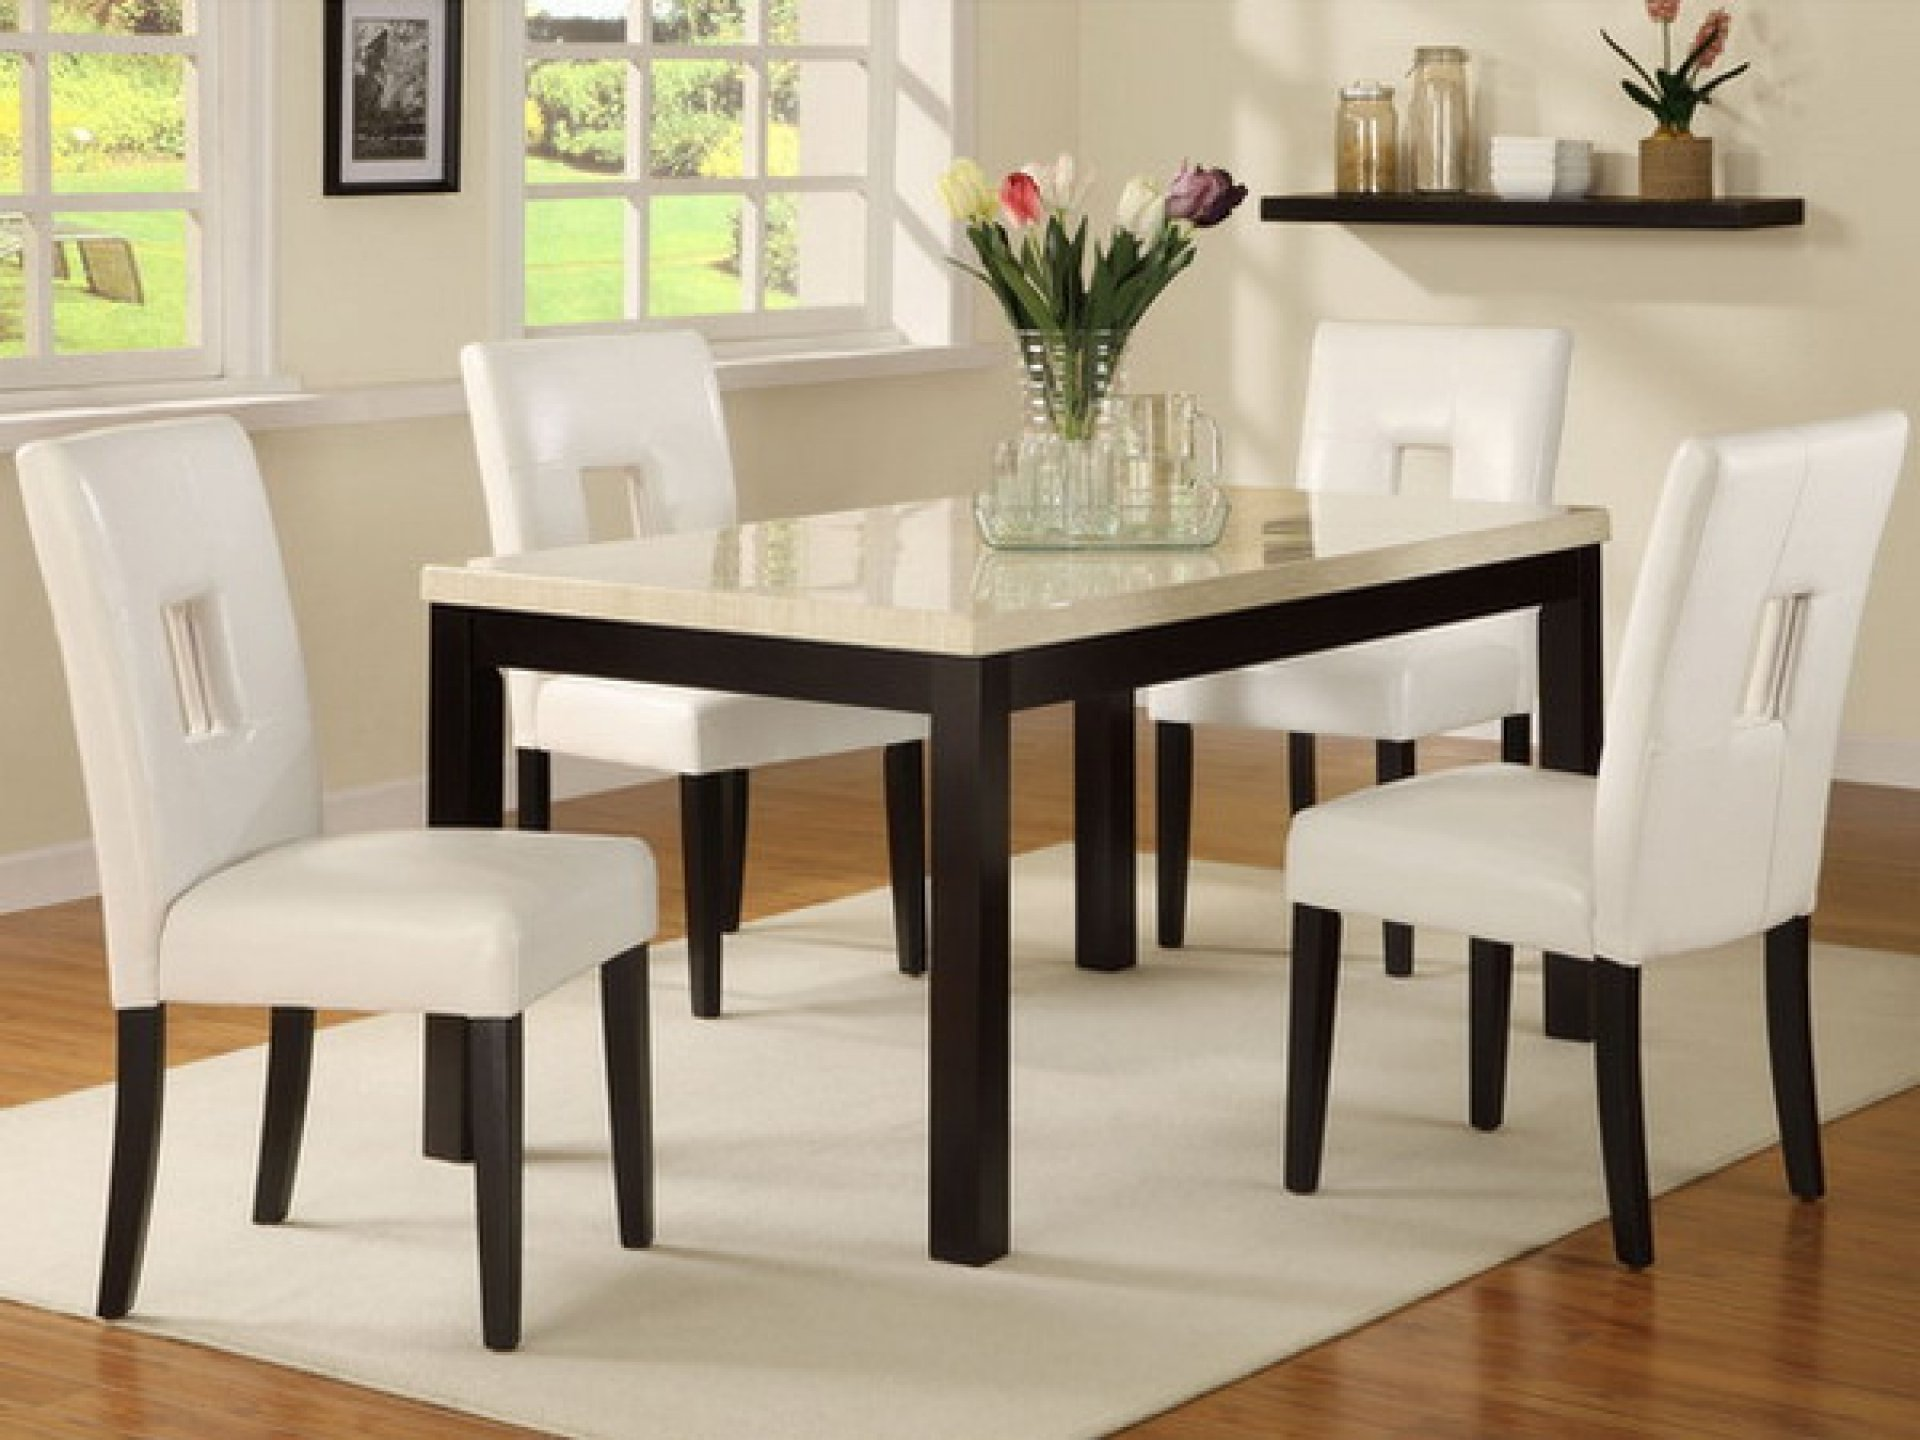 with water dining room table and chair set for